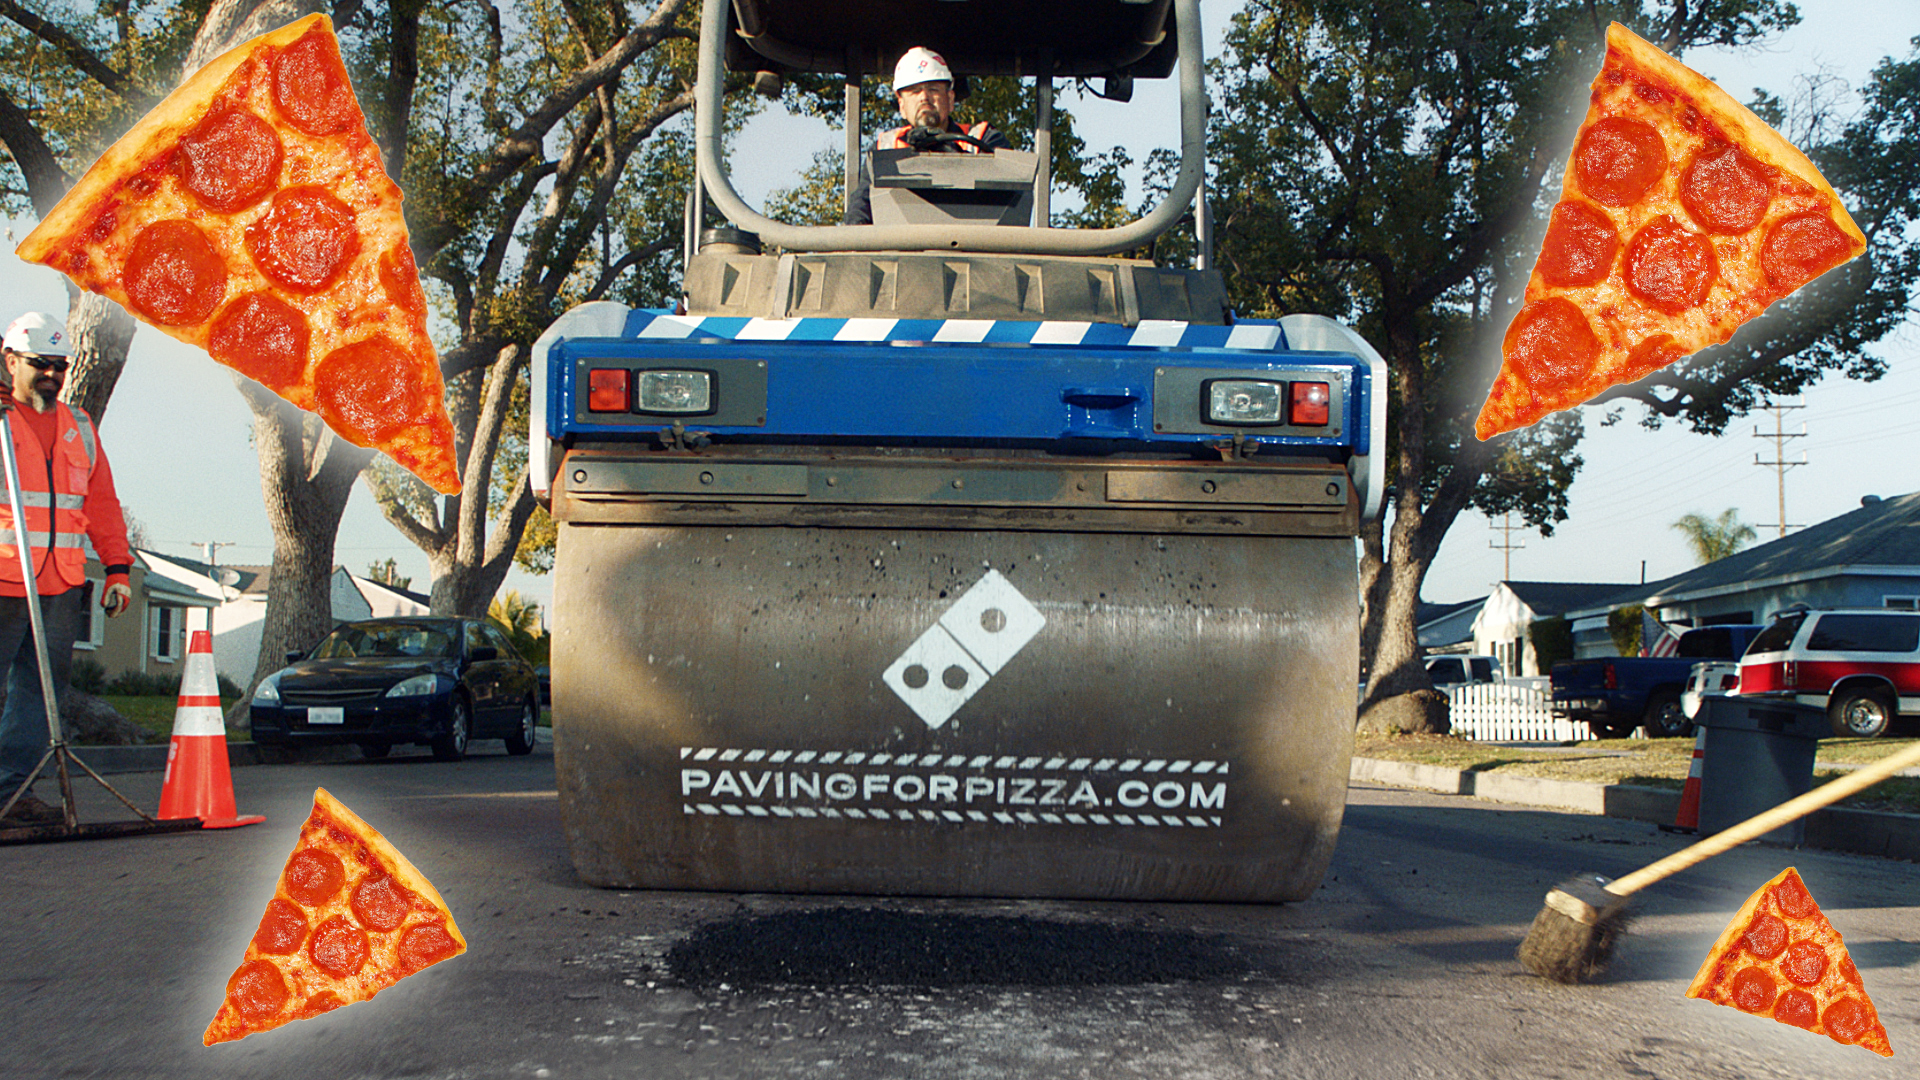 Is your town plagued by potholes? Let Domino's Pizza know! thumbnail